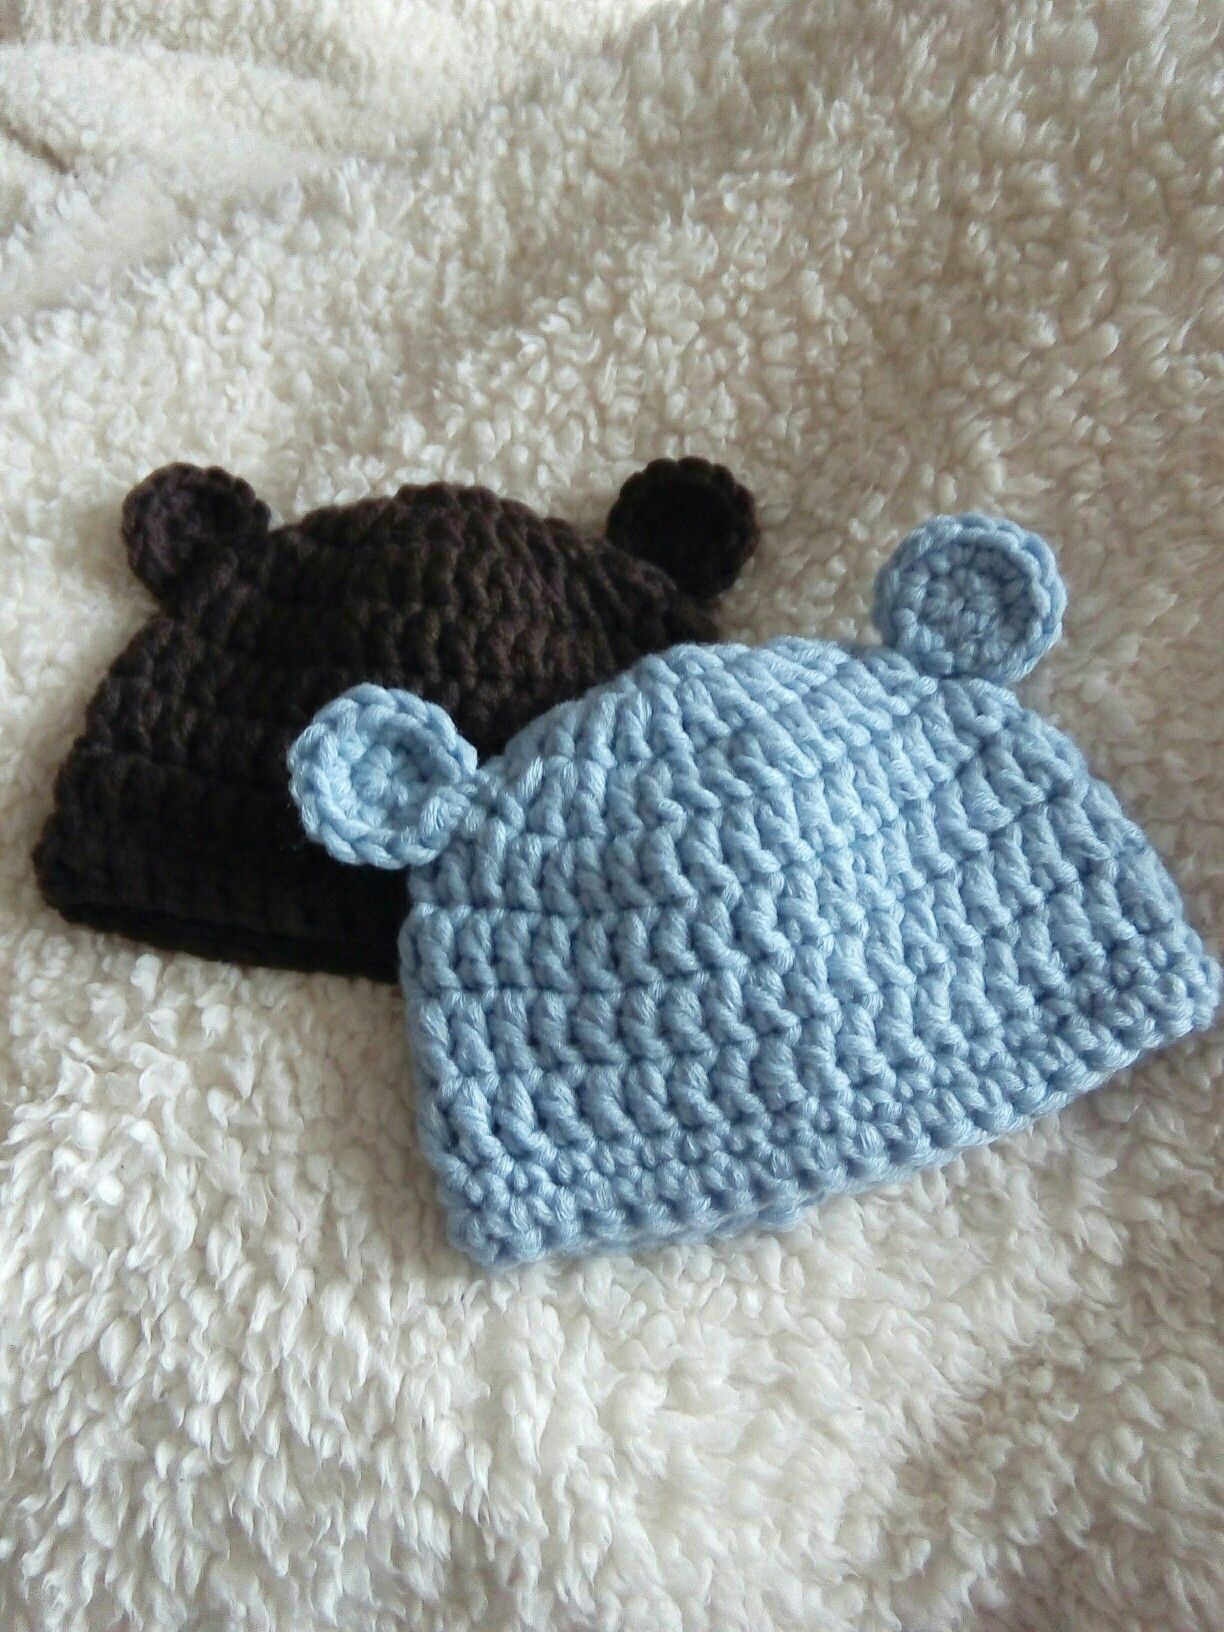 Pin By Ciara Holder On Craft Ideas Baby Knitting Patterns Crochet